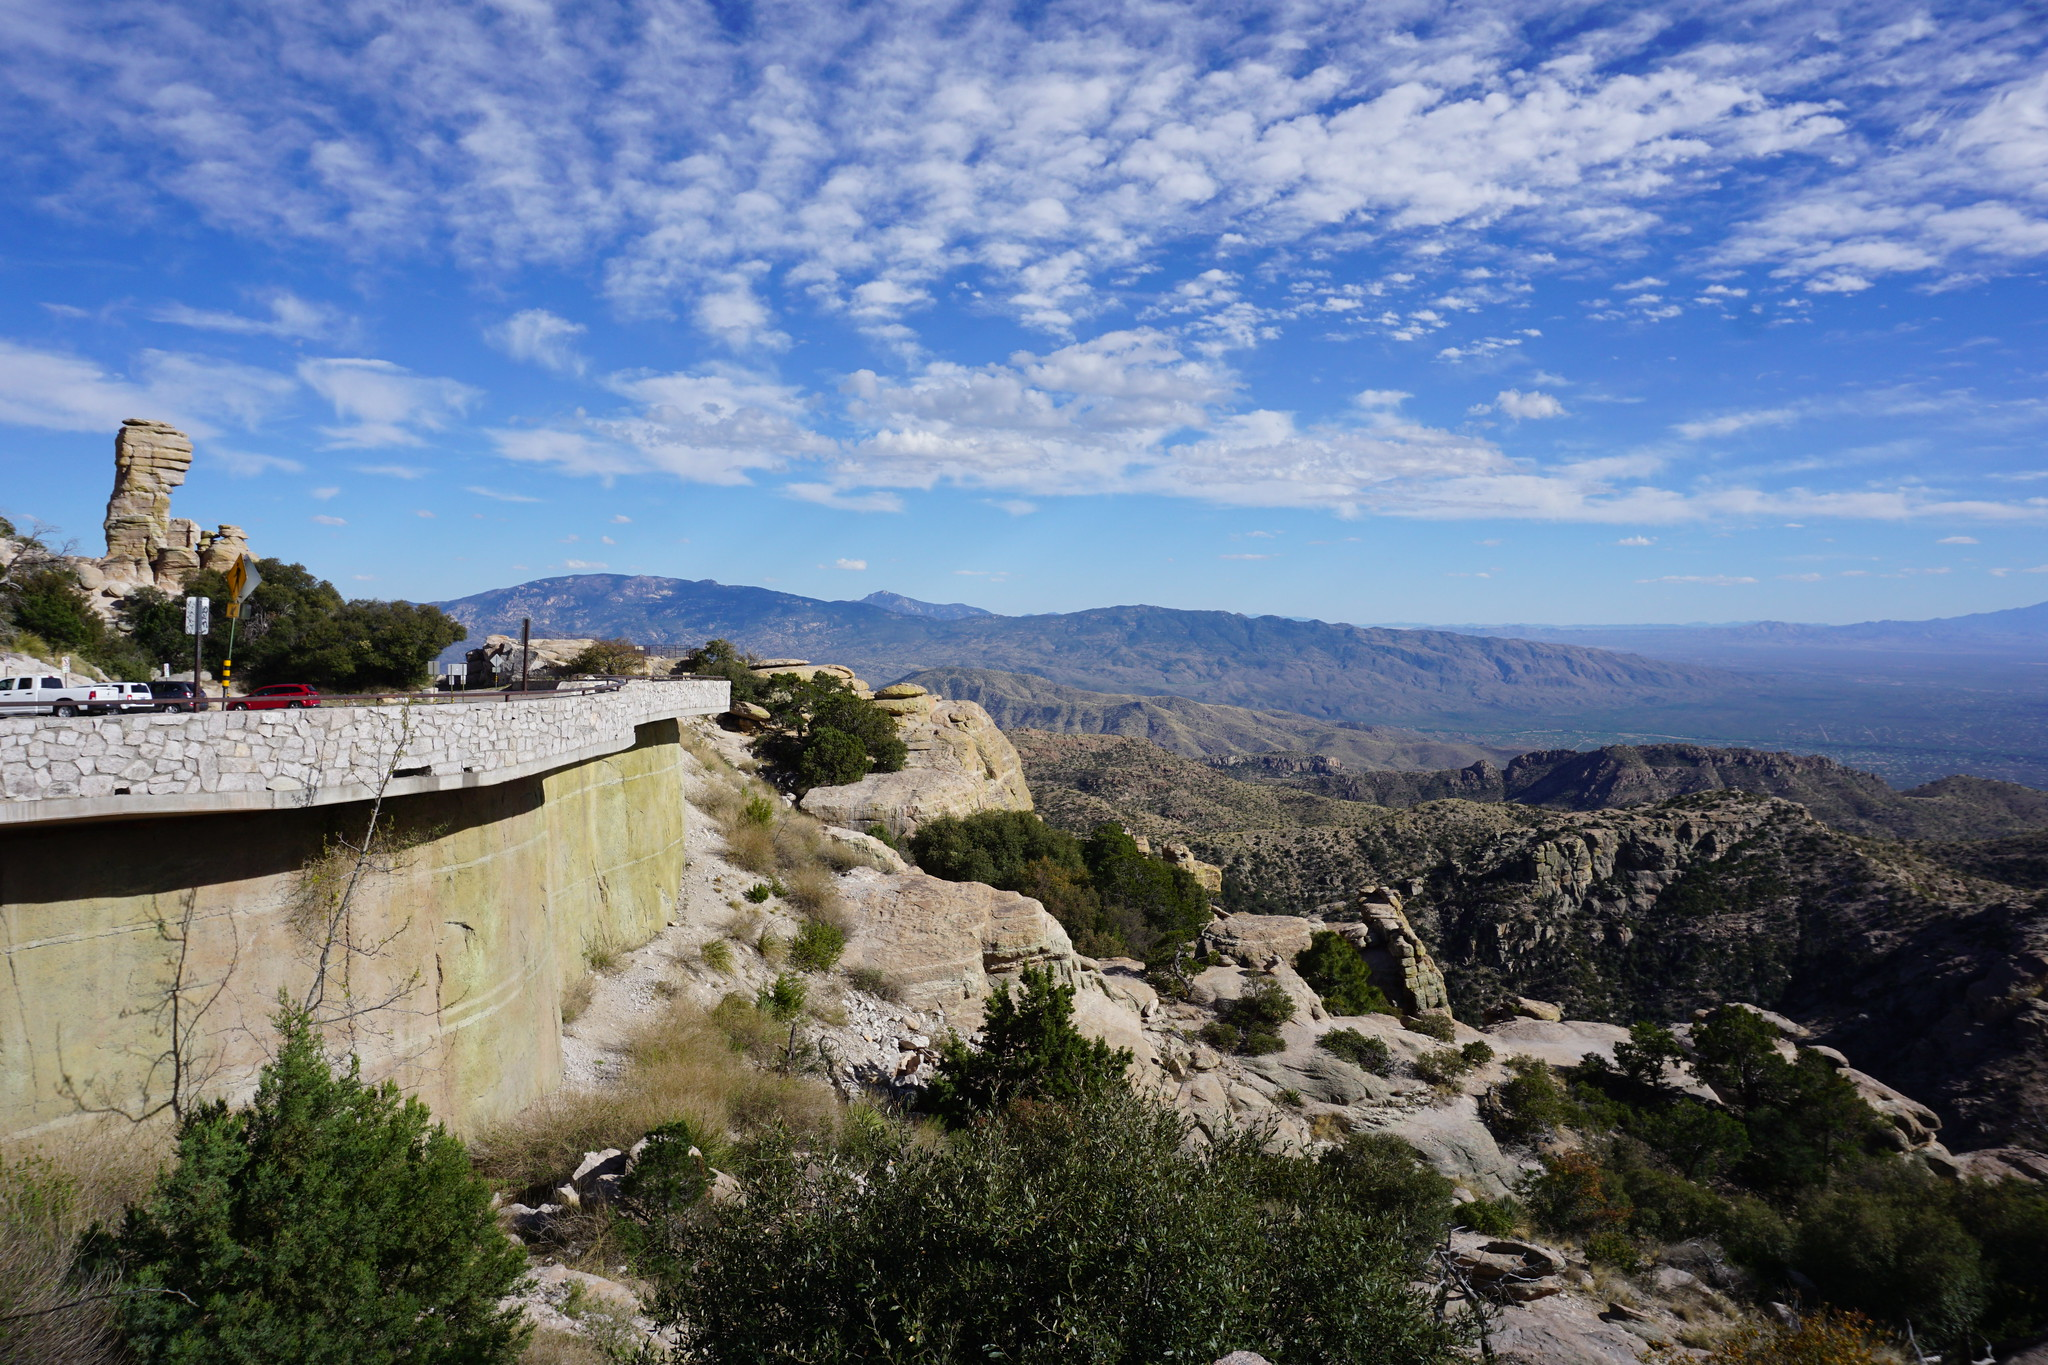 Famous Place To Visit In Tucson-Mount Lemmon Scenic Byway